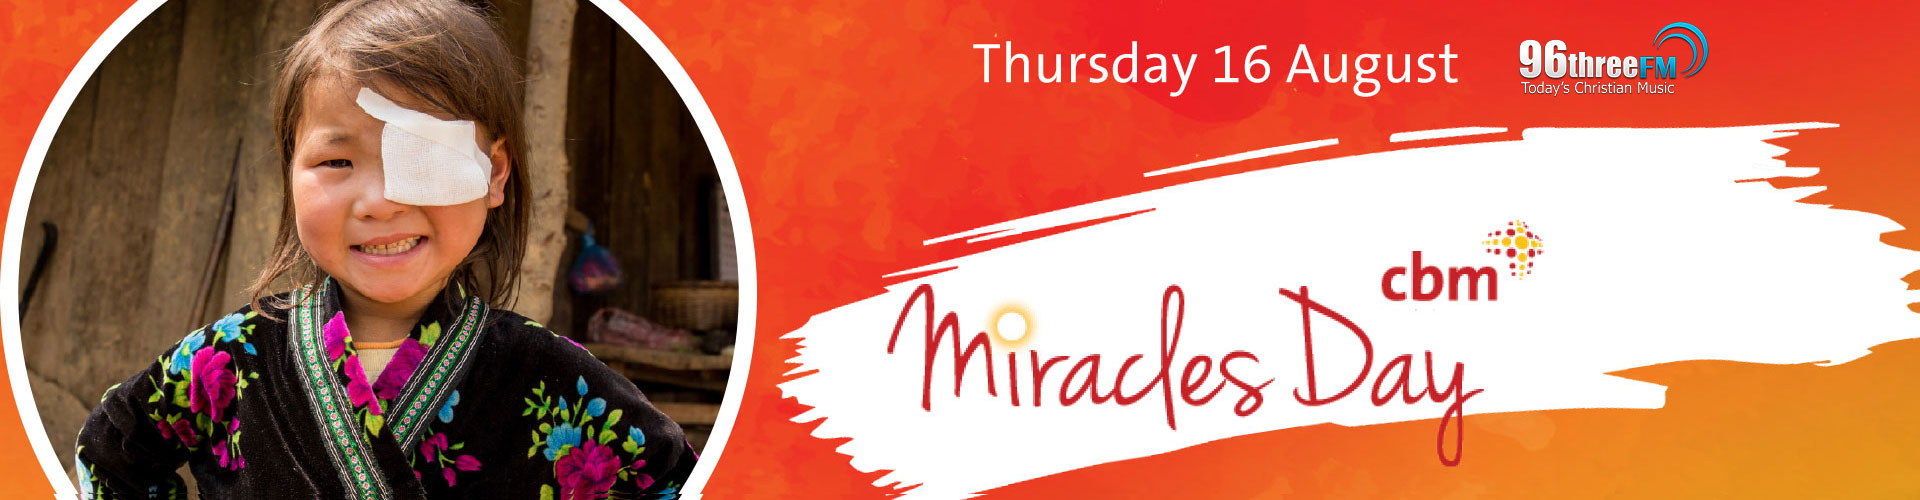 2018-Miracles-Day-Web-banner-3-1